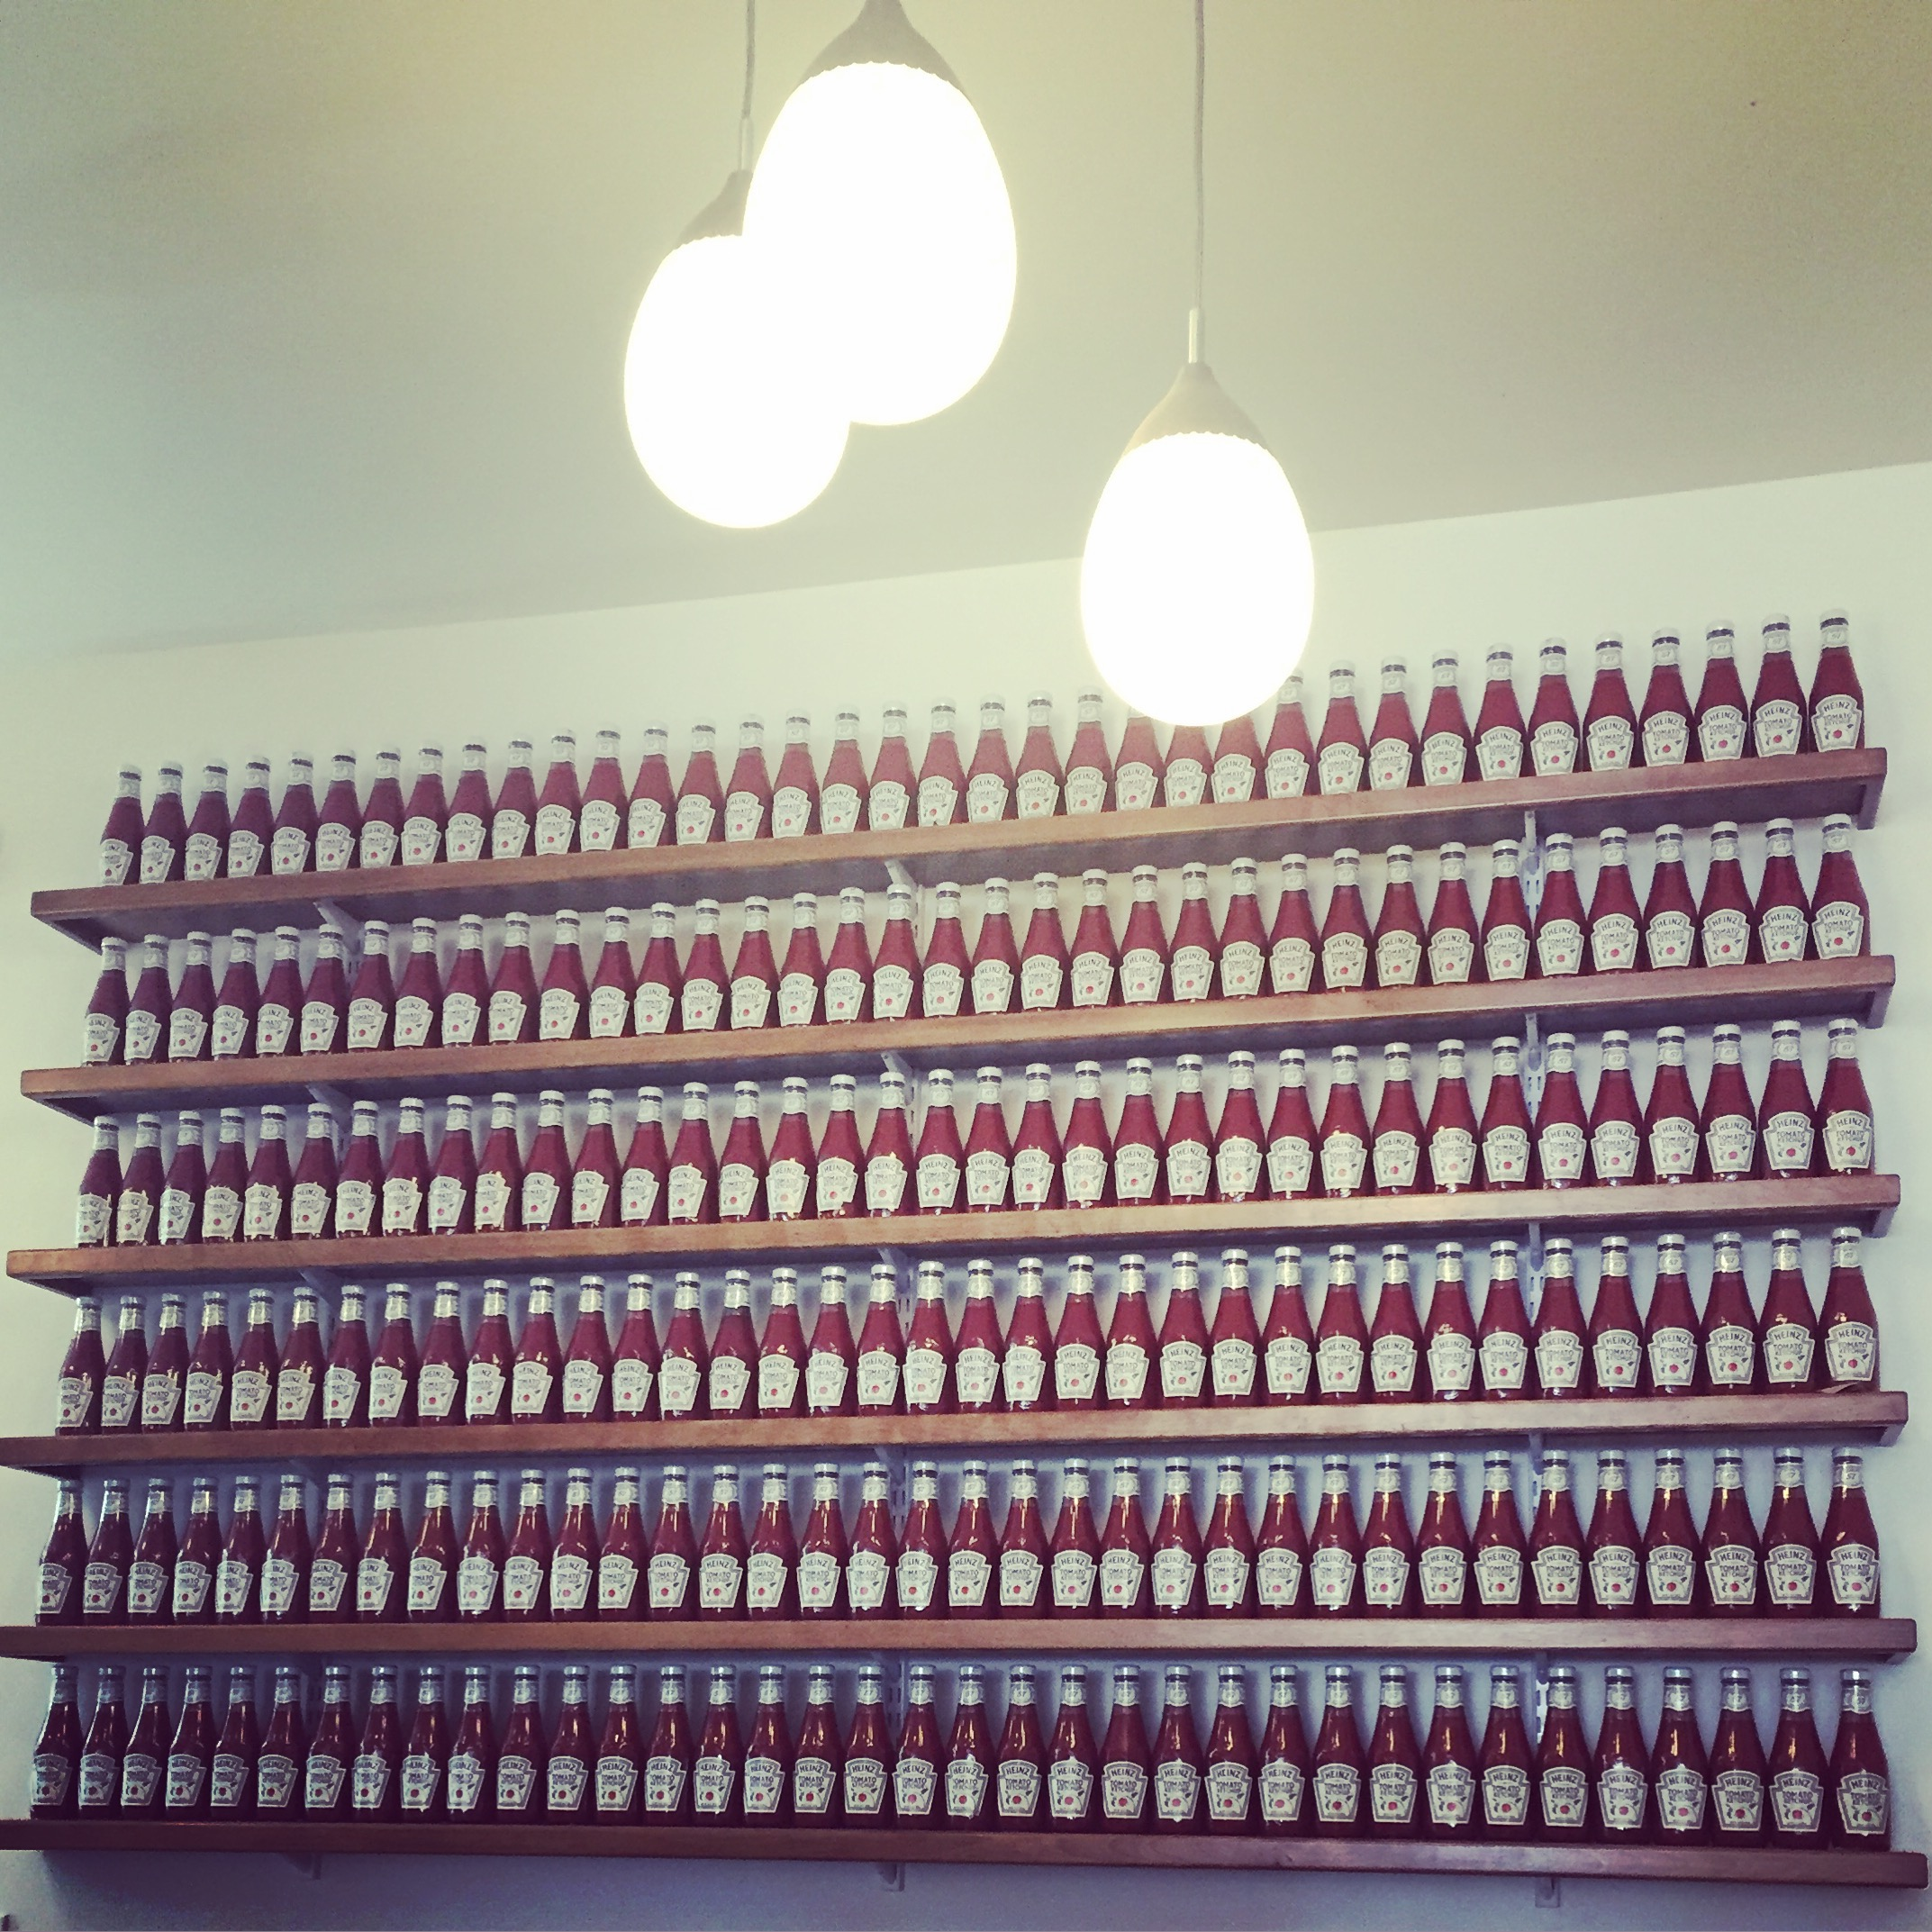 ketchup bottles on open shelving is totally art. taken at farmer boy in santa barbara, ca.